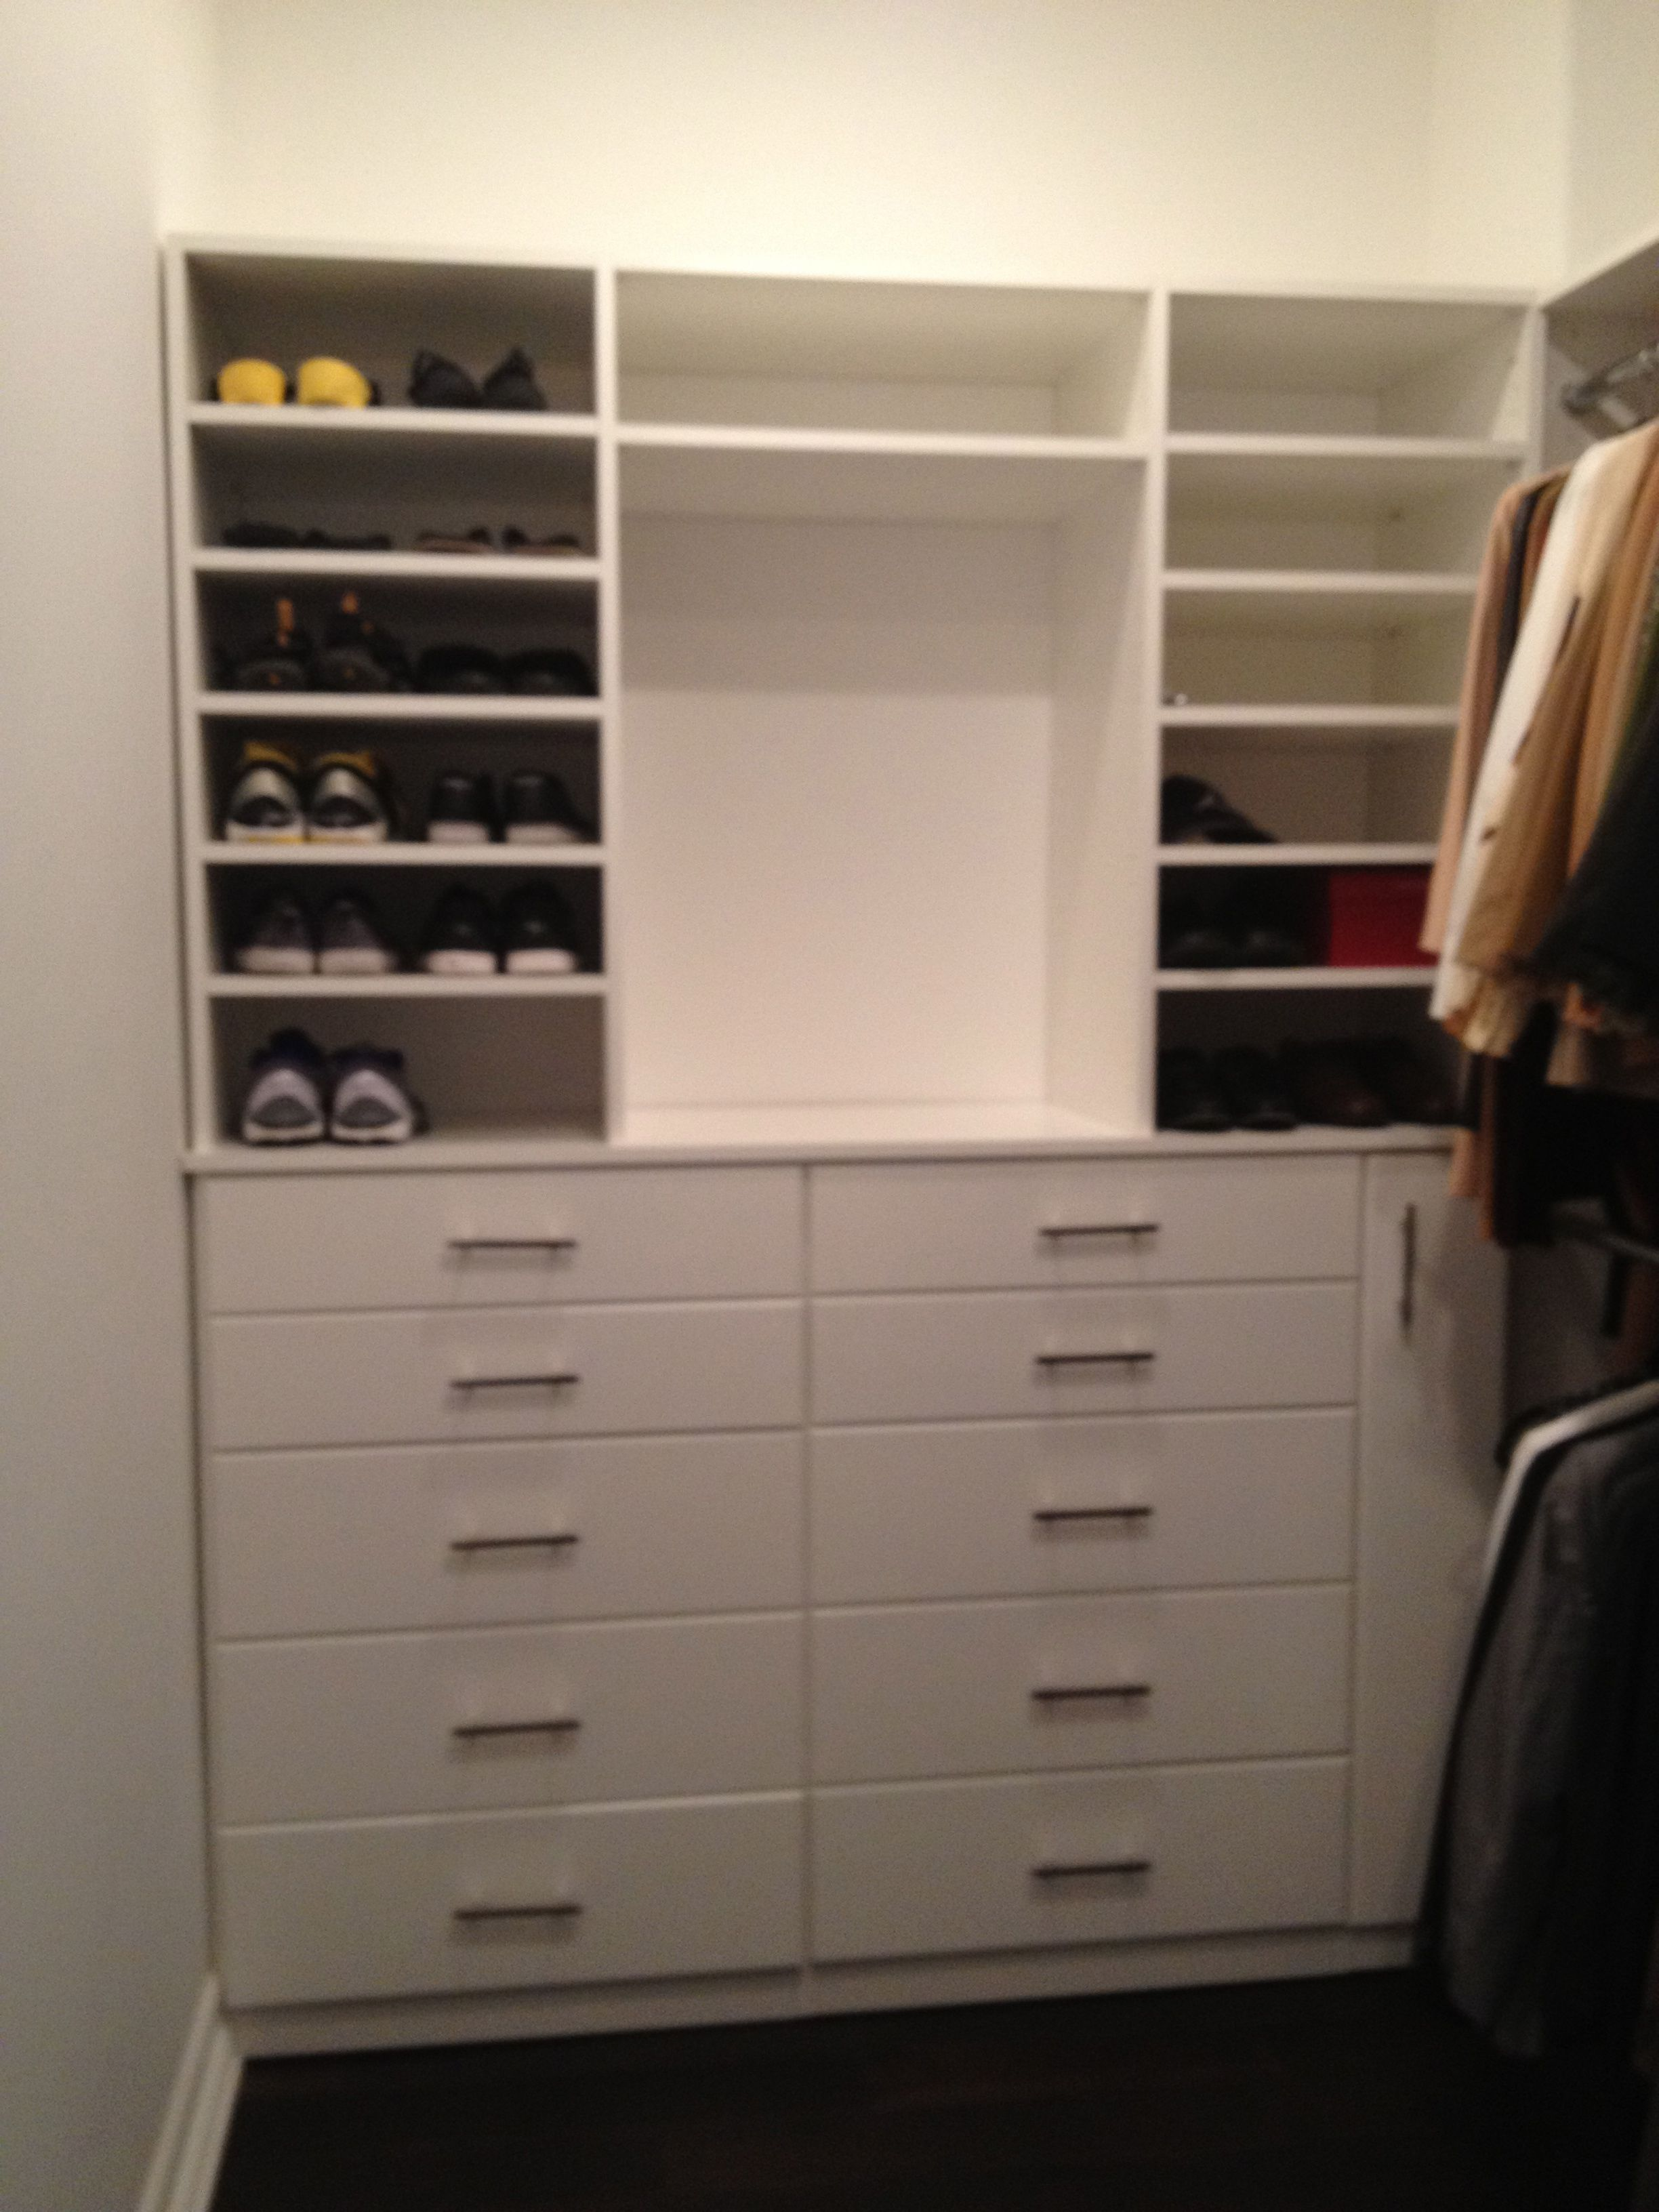 Built In Dresser Inside Closet Built In Dresser, Built Ins, Dressers,  Closets,